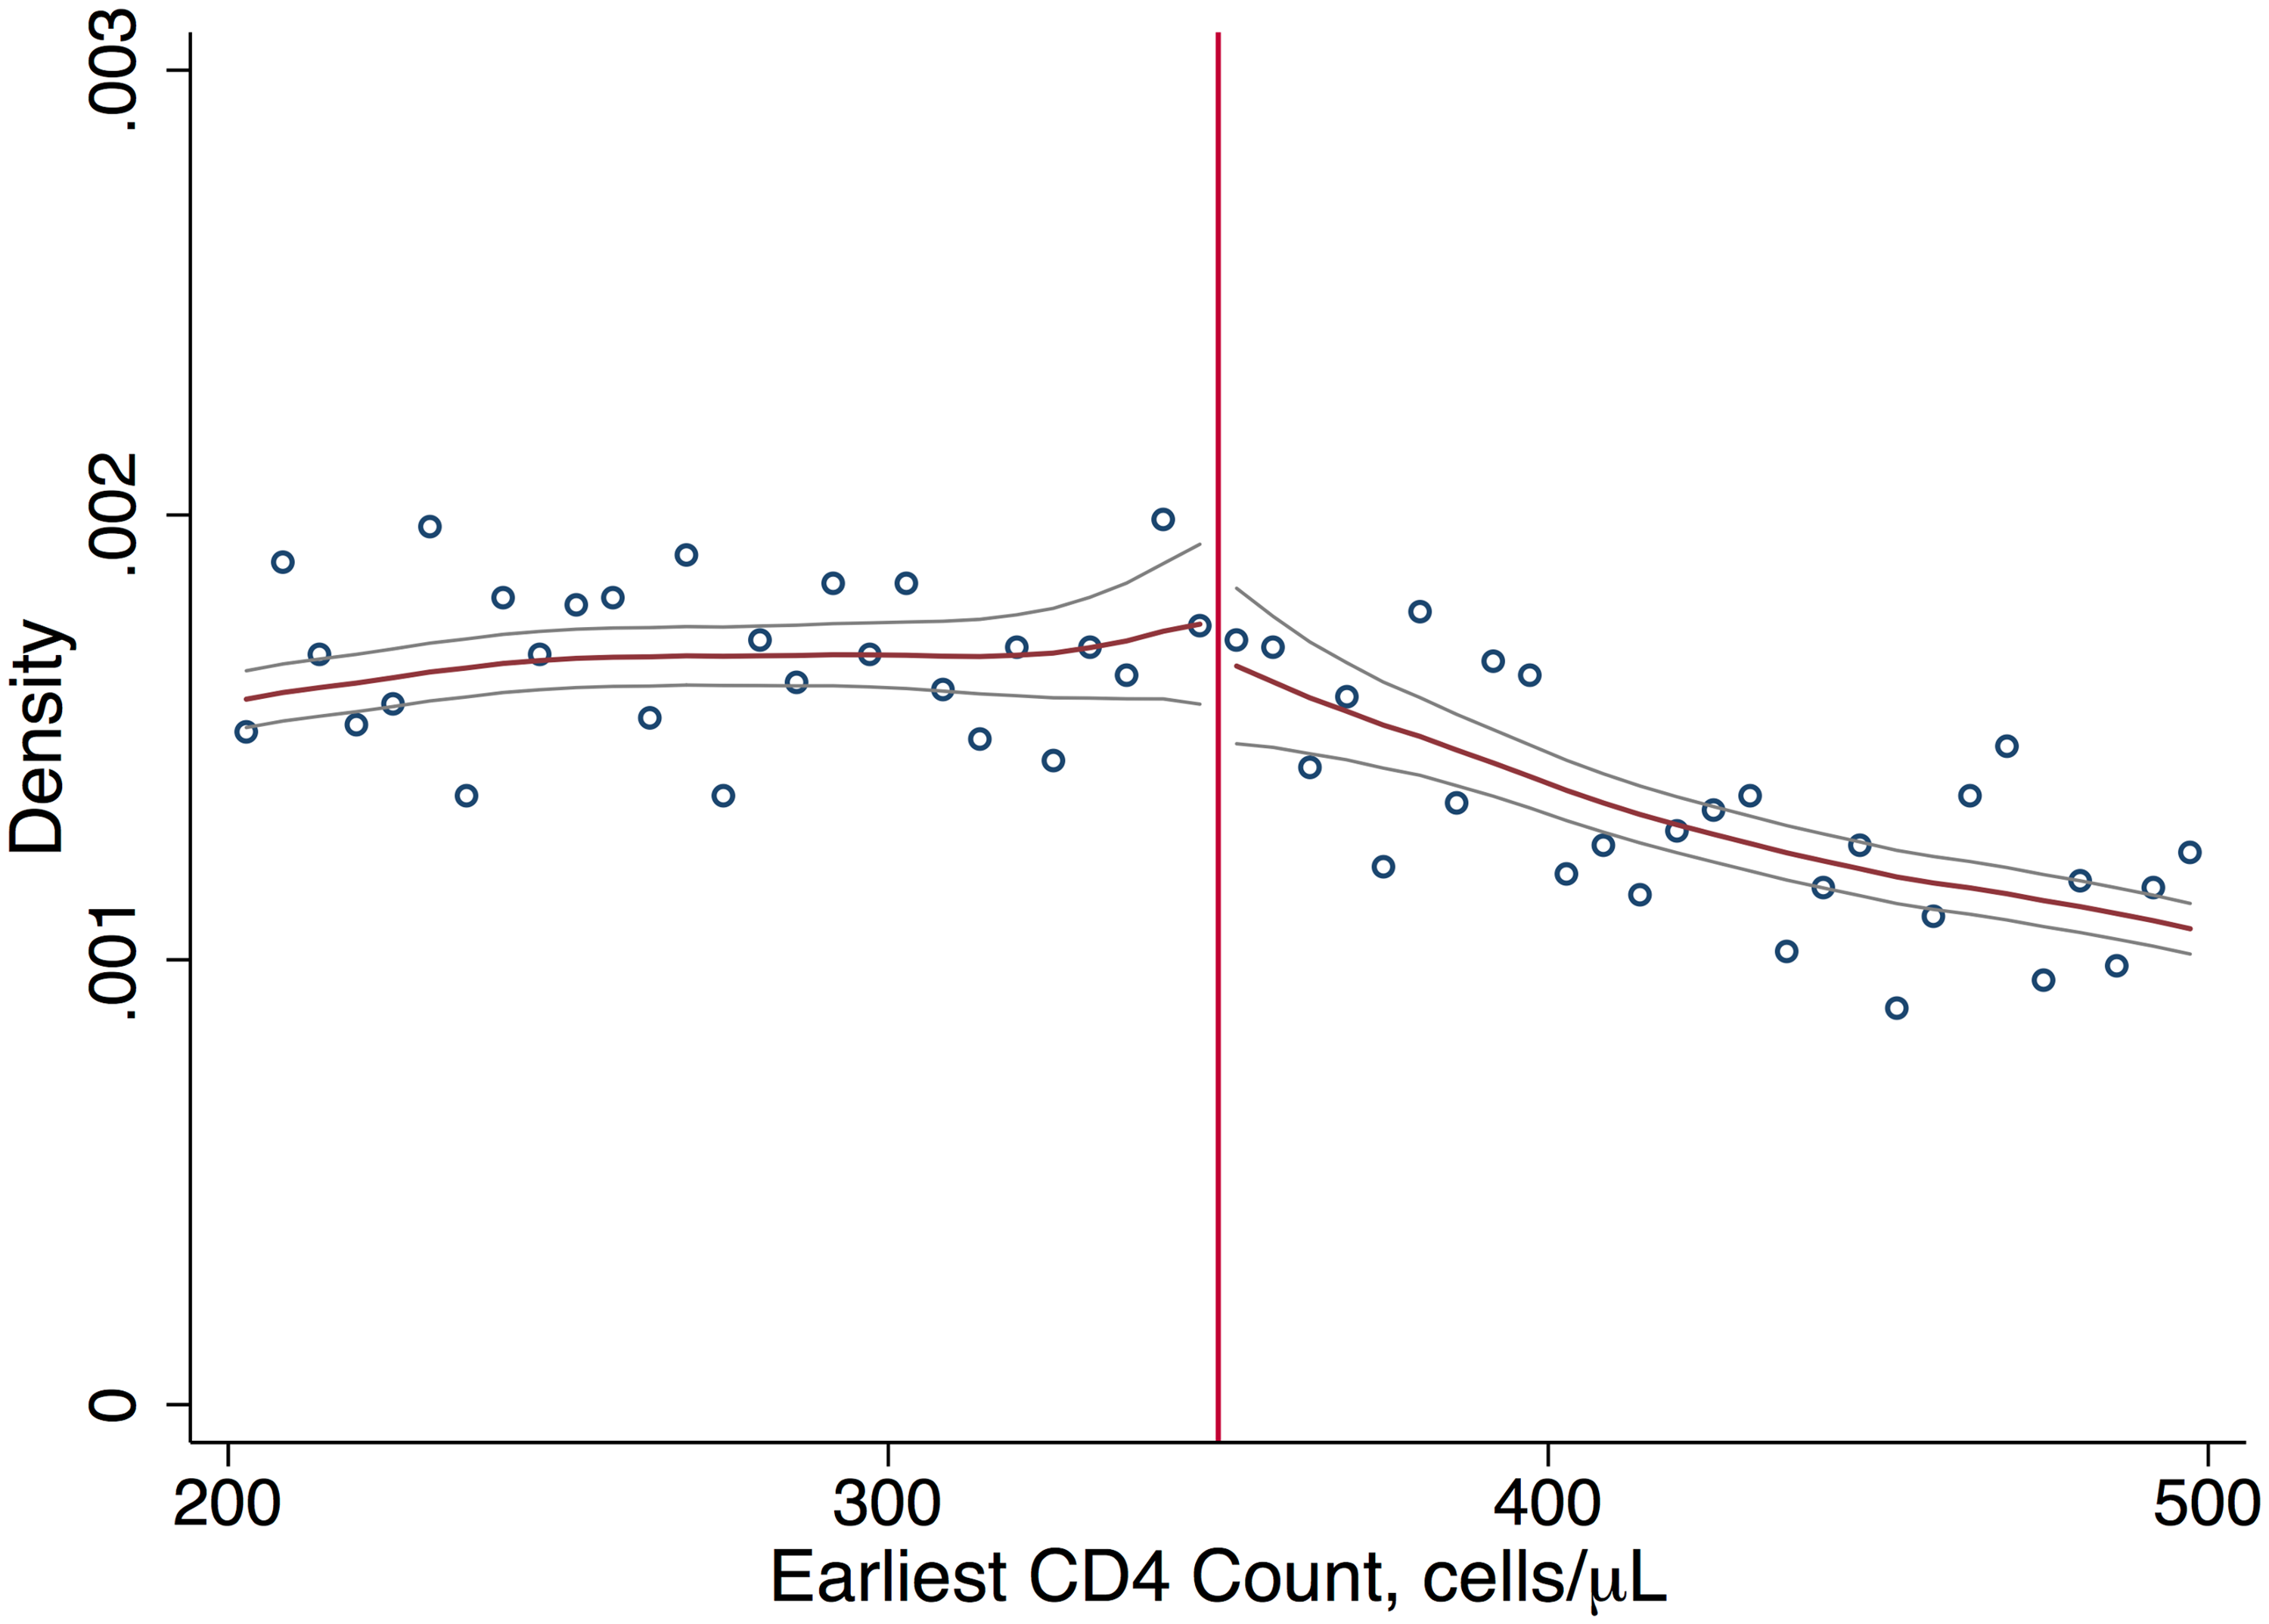 Density of first CD4 counts.